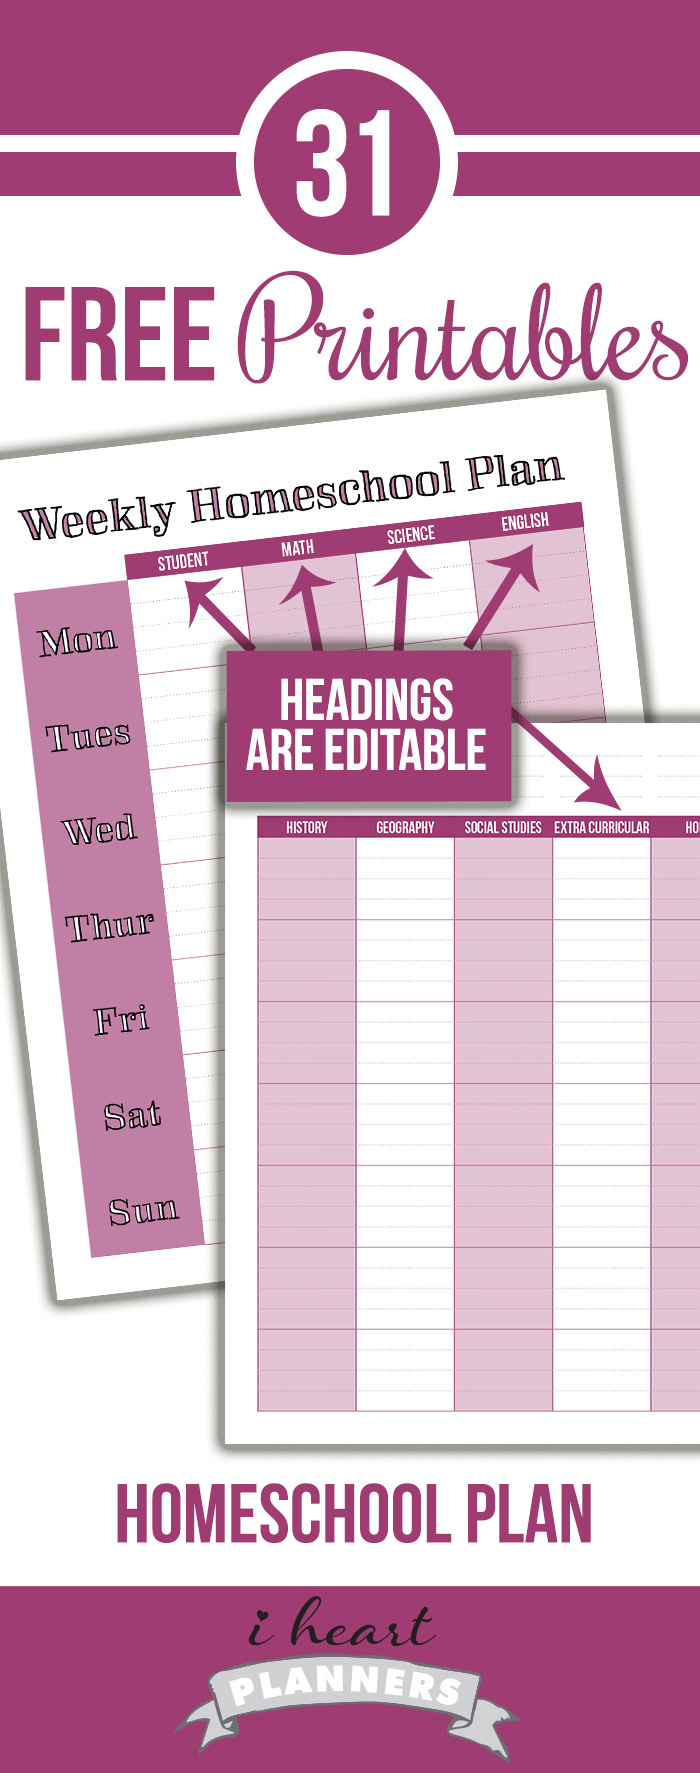 Free homeschool planner - keep track of your homeschool lesson plans each week. The column headings are editable, so you can plan the subjects you need.